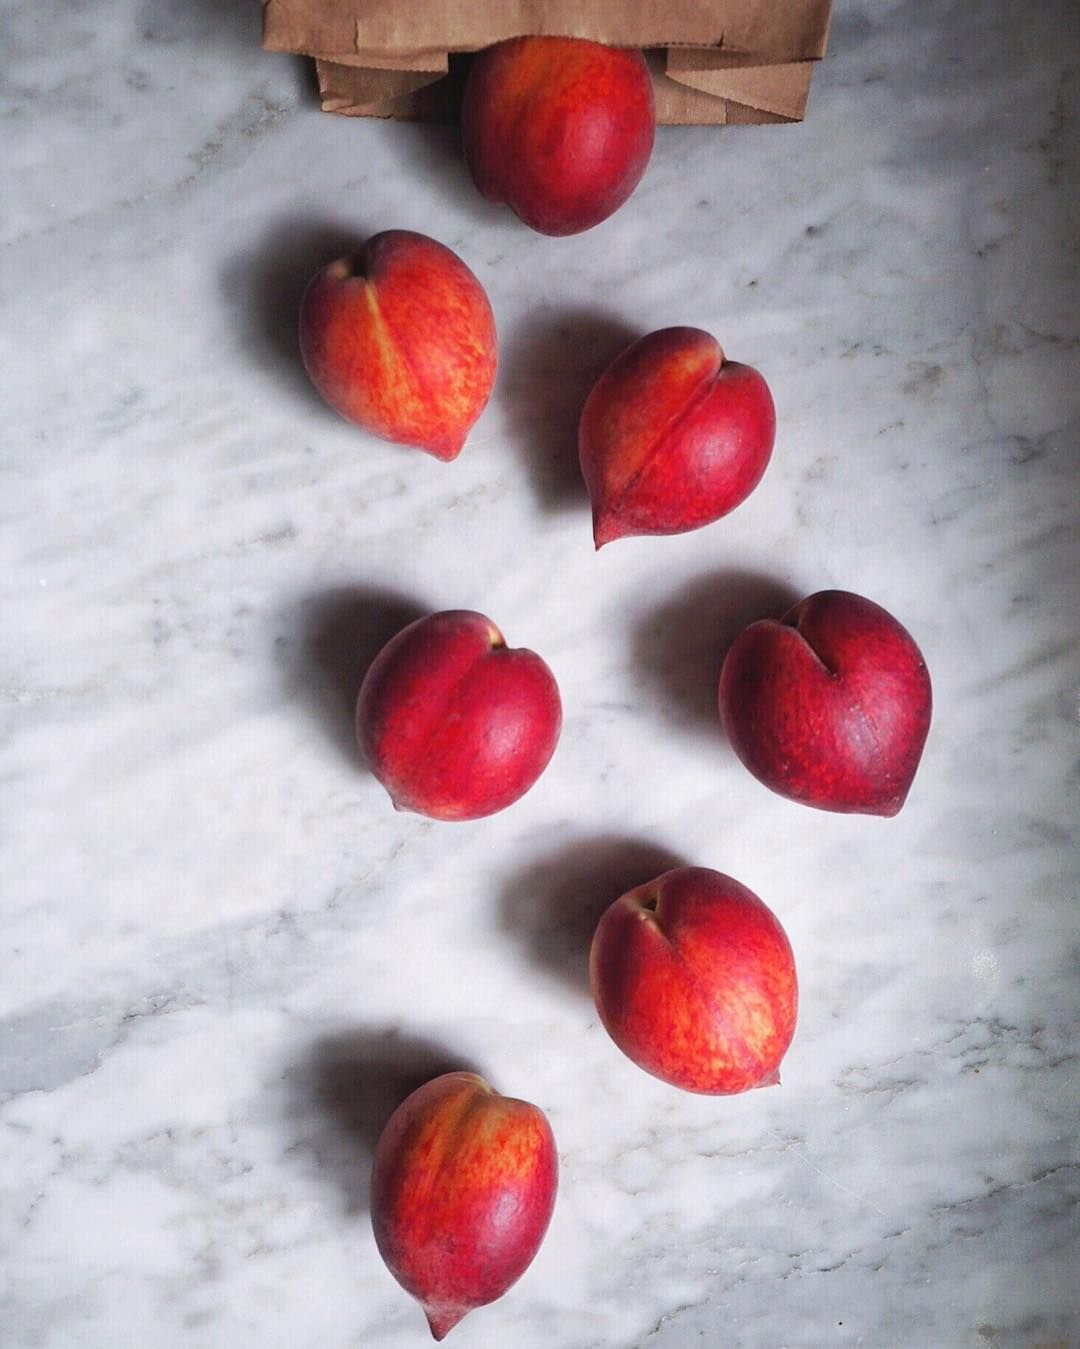 These heart shaped beauties have been picked let peach season